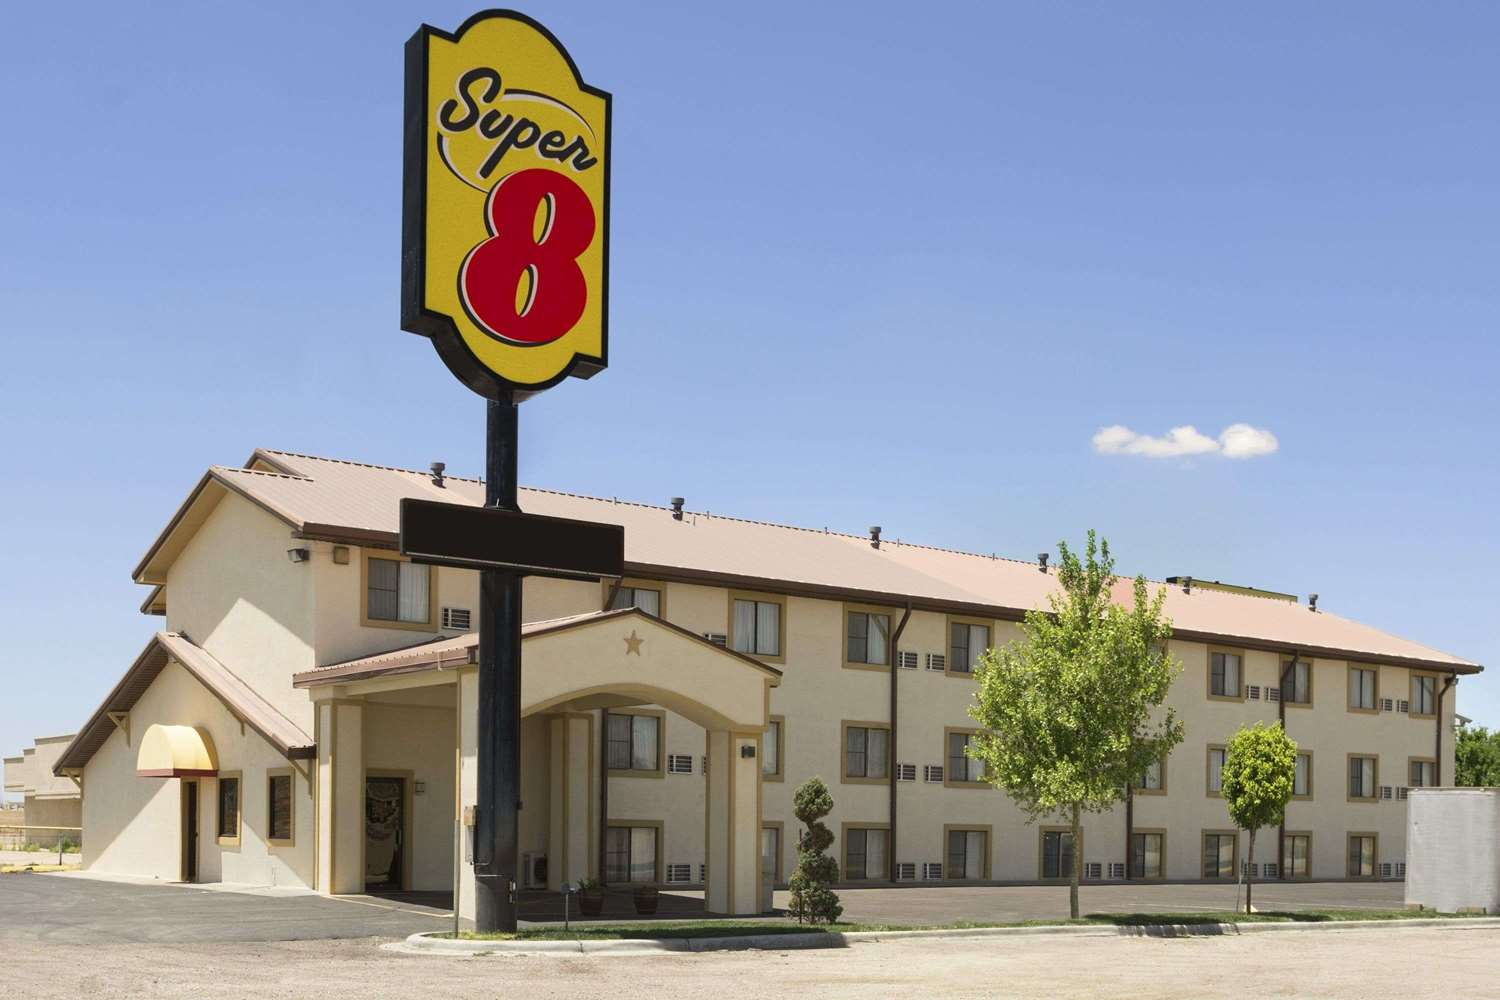 Super 8 Hotel East Amarillo